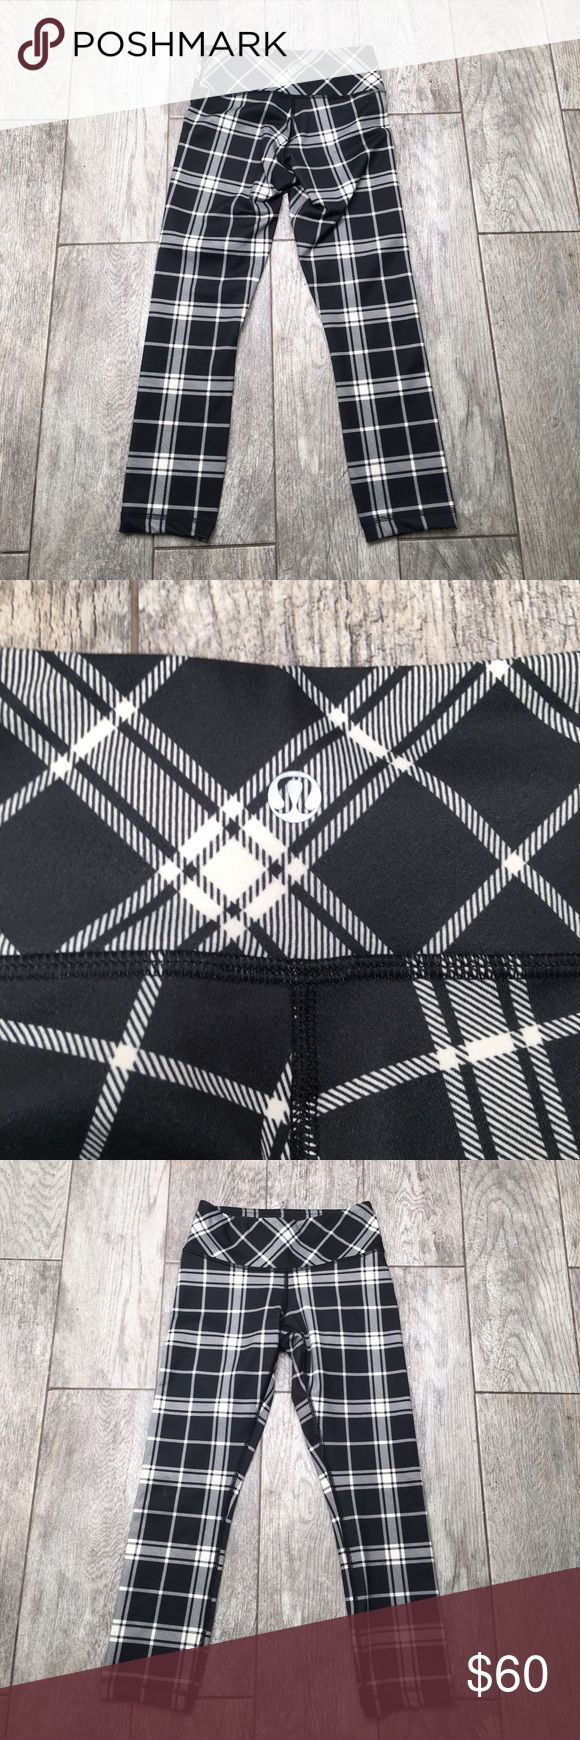 Lululemon Wunder Under pants Leggings plaid 2 Lululemon wunder under plaid black and white pants. Size 2. EUC with no signs of wear. Such a cute pair of leggings lululemon athletica Pants Leggings